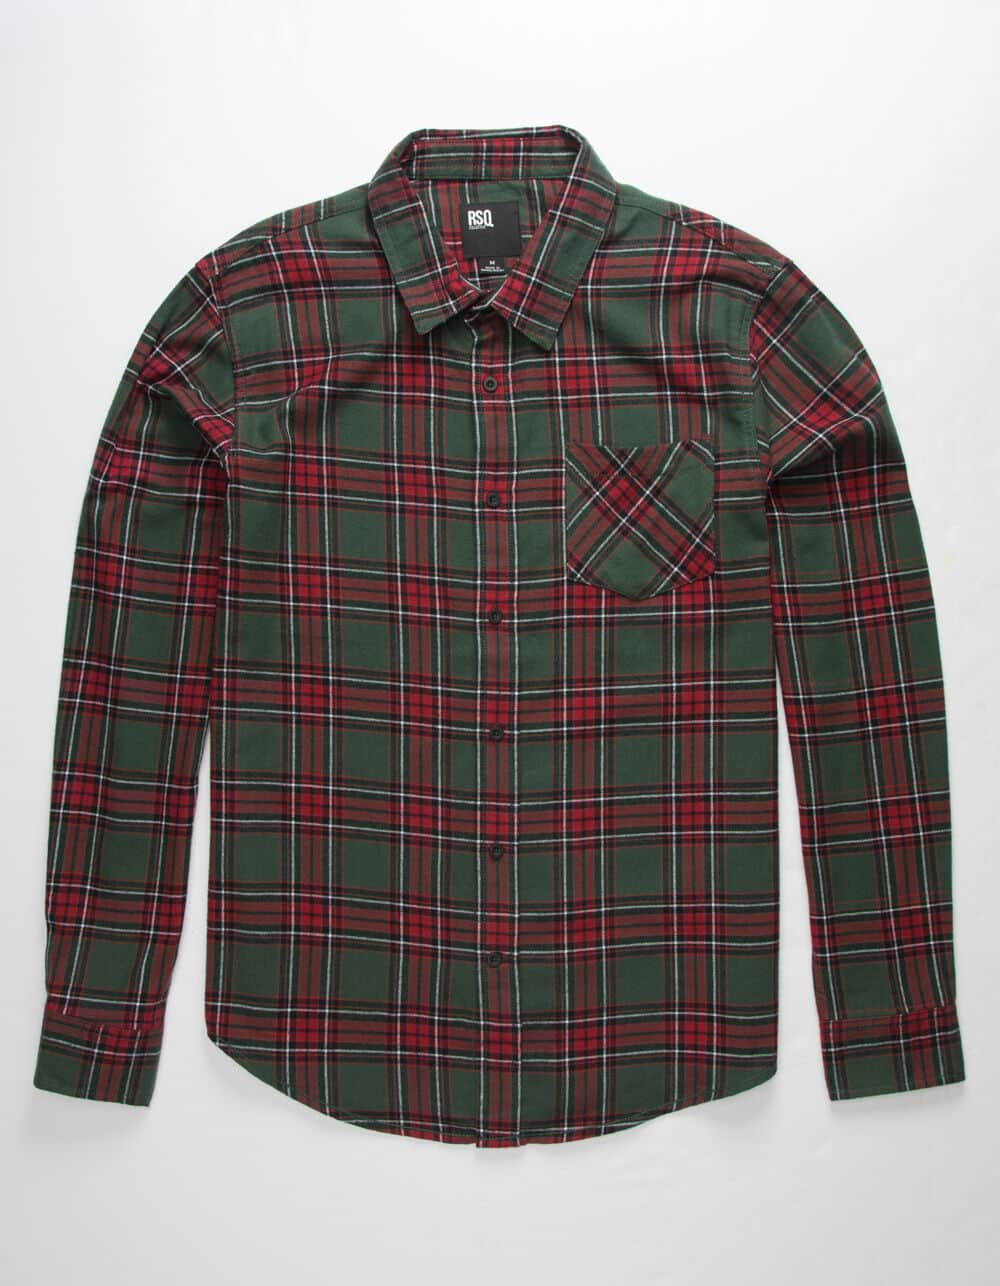 Tillys' Flash Sale: Men's RSQ Flannel Shirt $6, Women's Full Tilt Camo Sweatshirt $6, Boys' RSQ Flannel Shirt $5 & More + Free Shipping